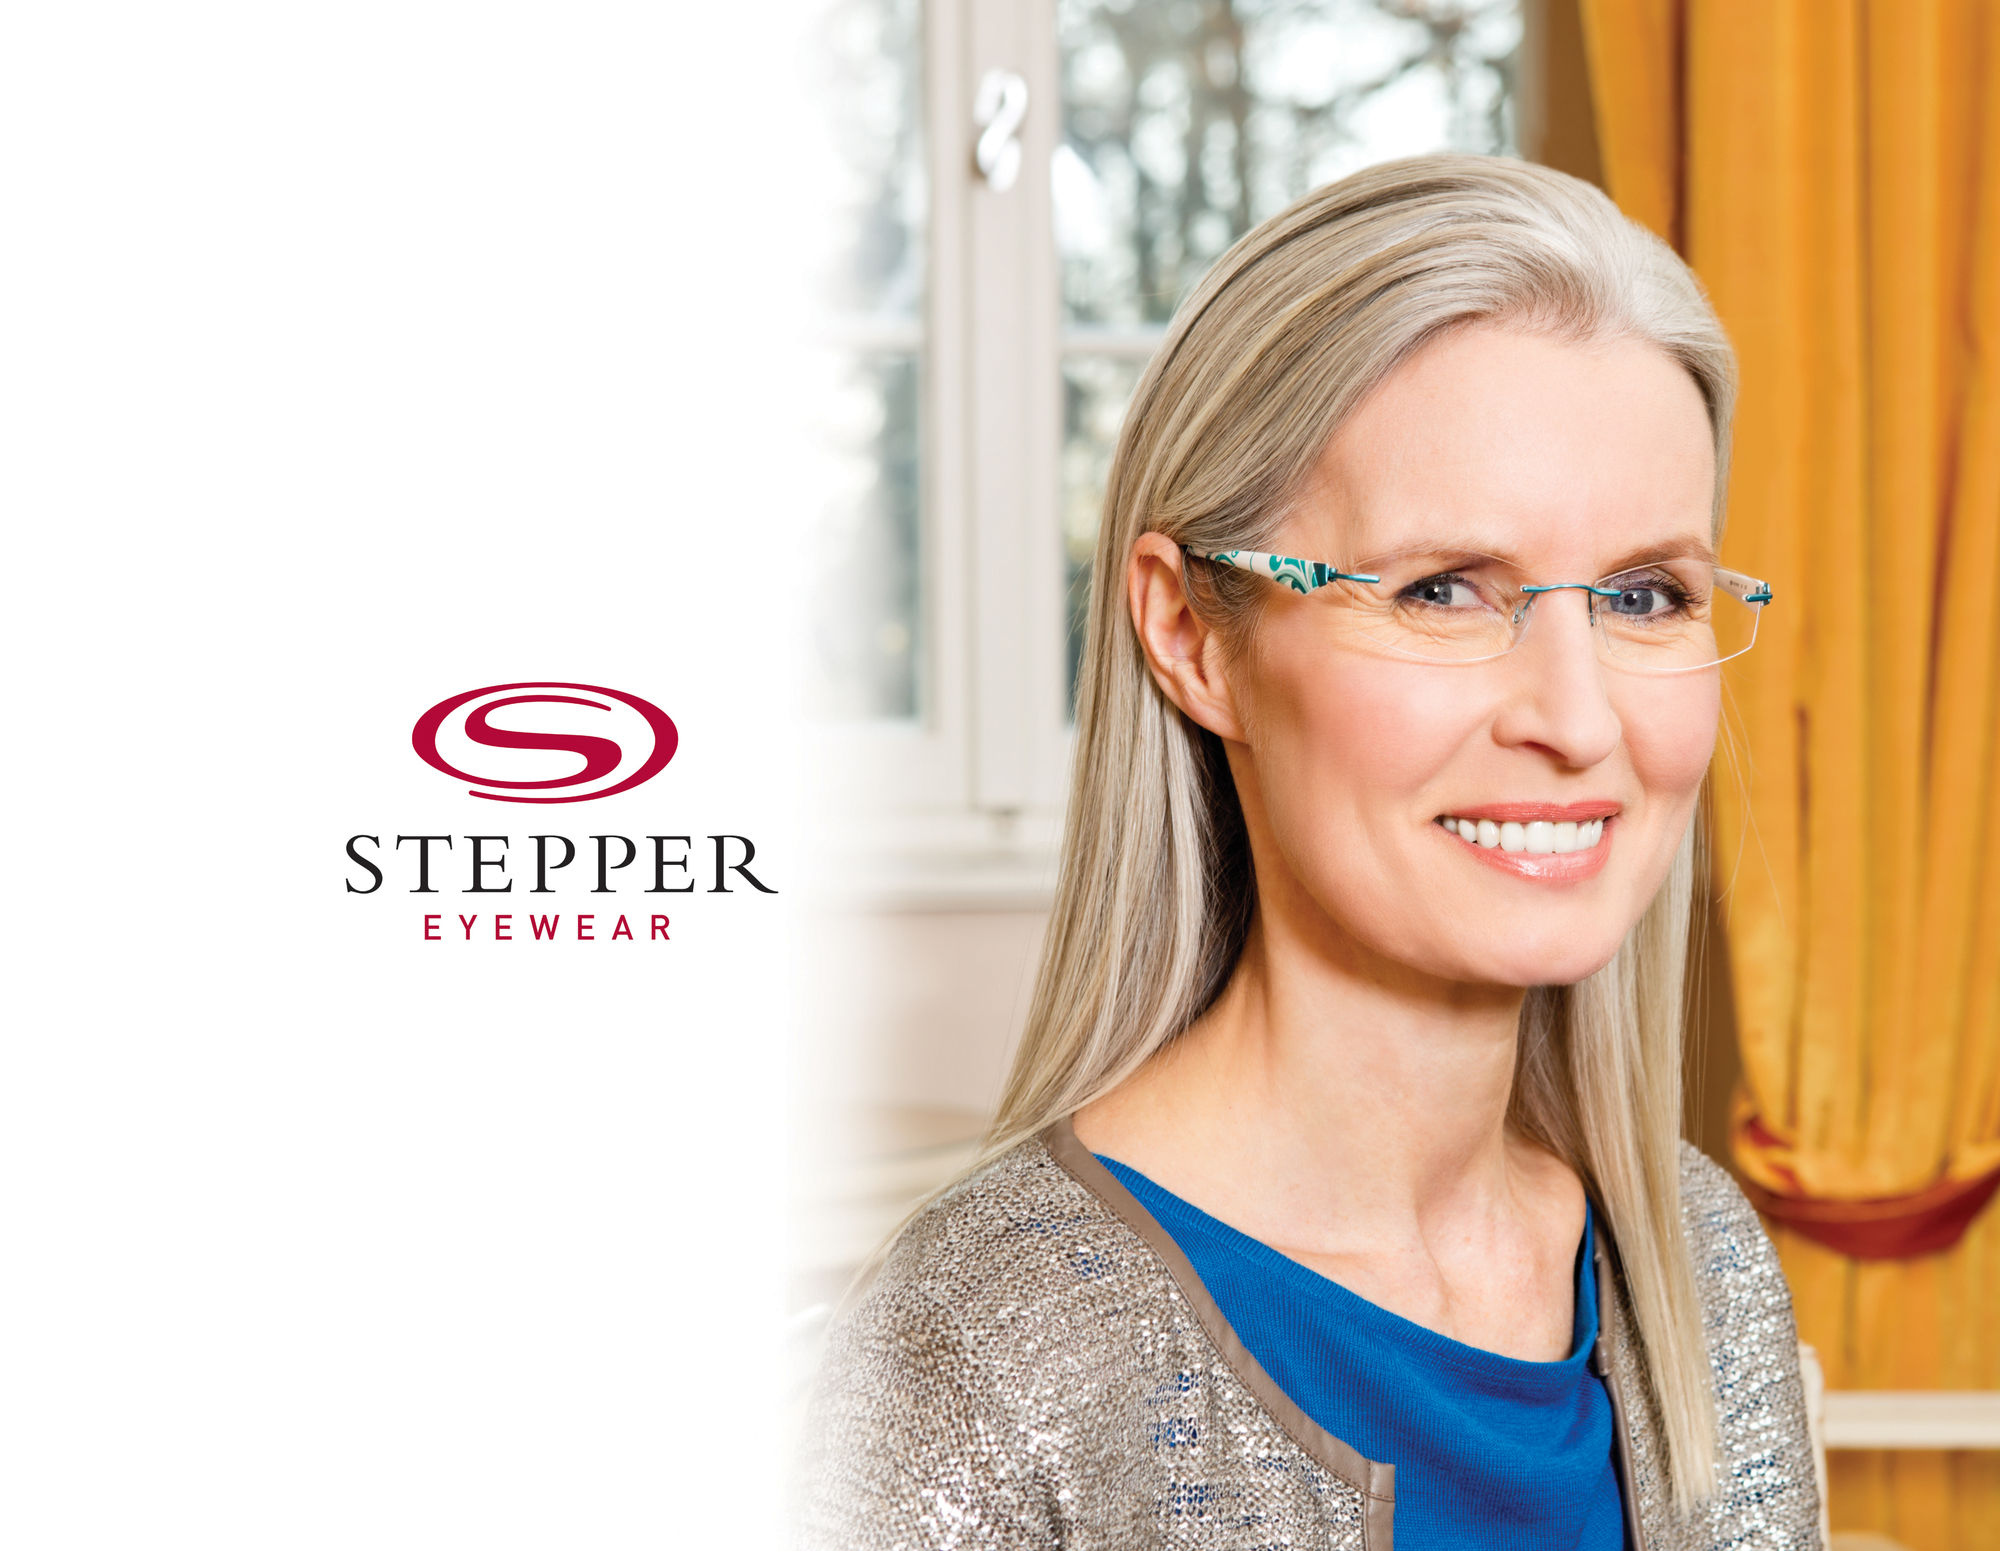 Goldenvision Optomists are stockists of Stepper eyewear